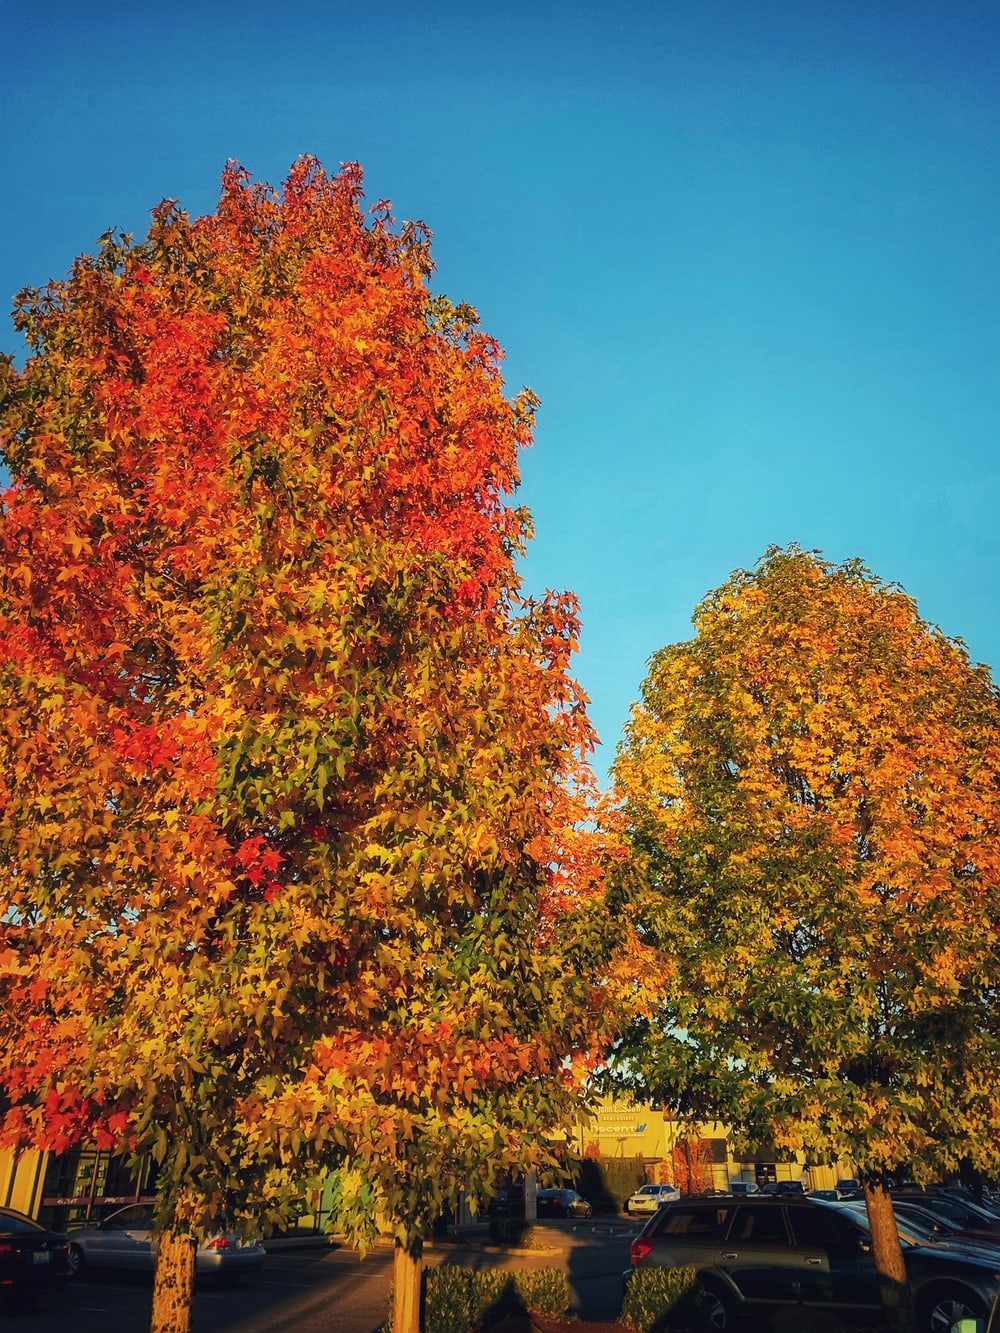 Places to view Autumn Leaves in the NW